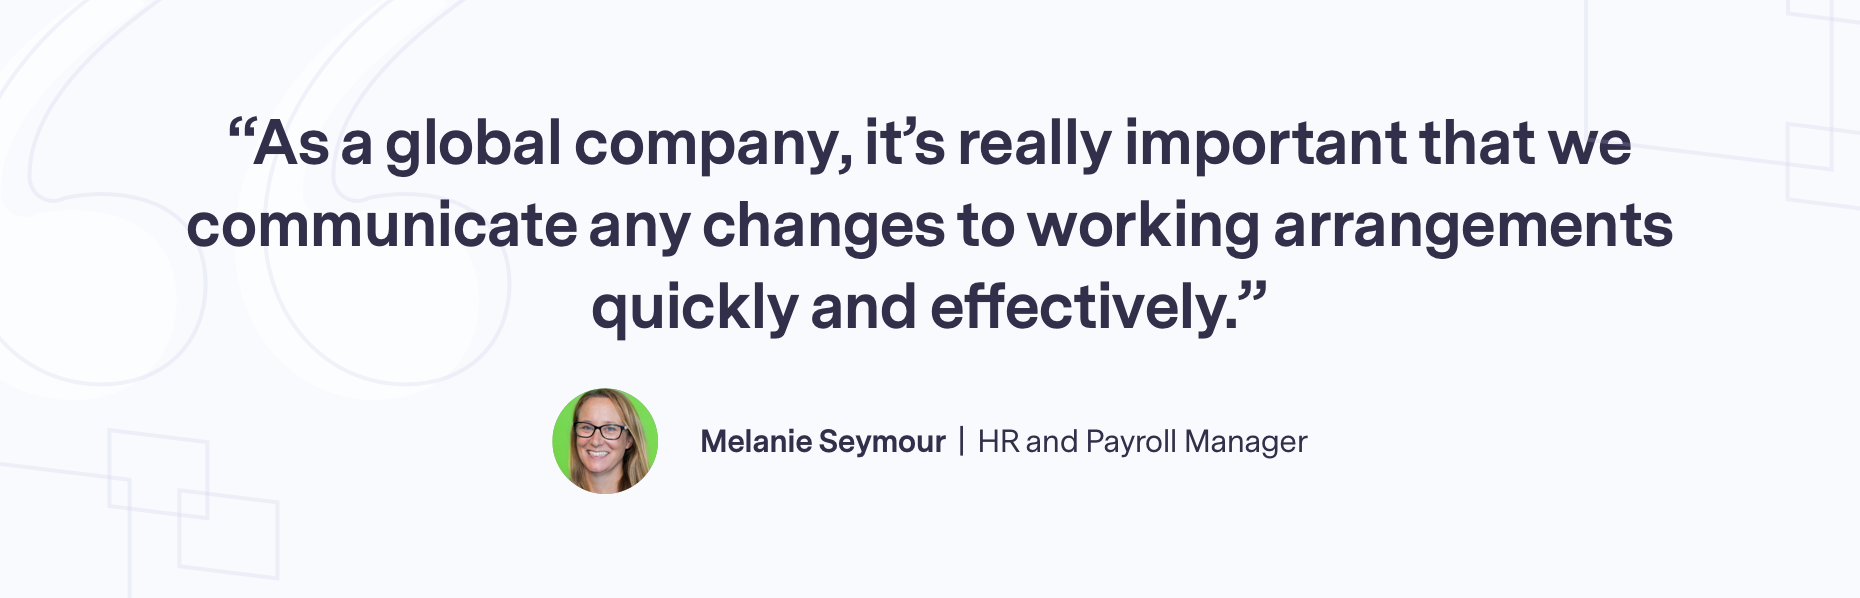 Quote from Melanie Seymour